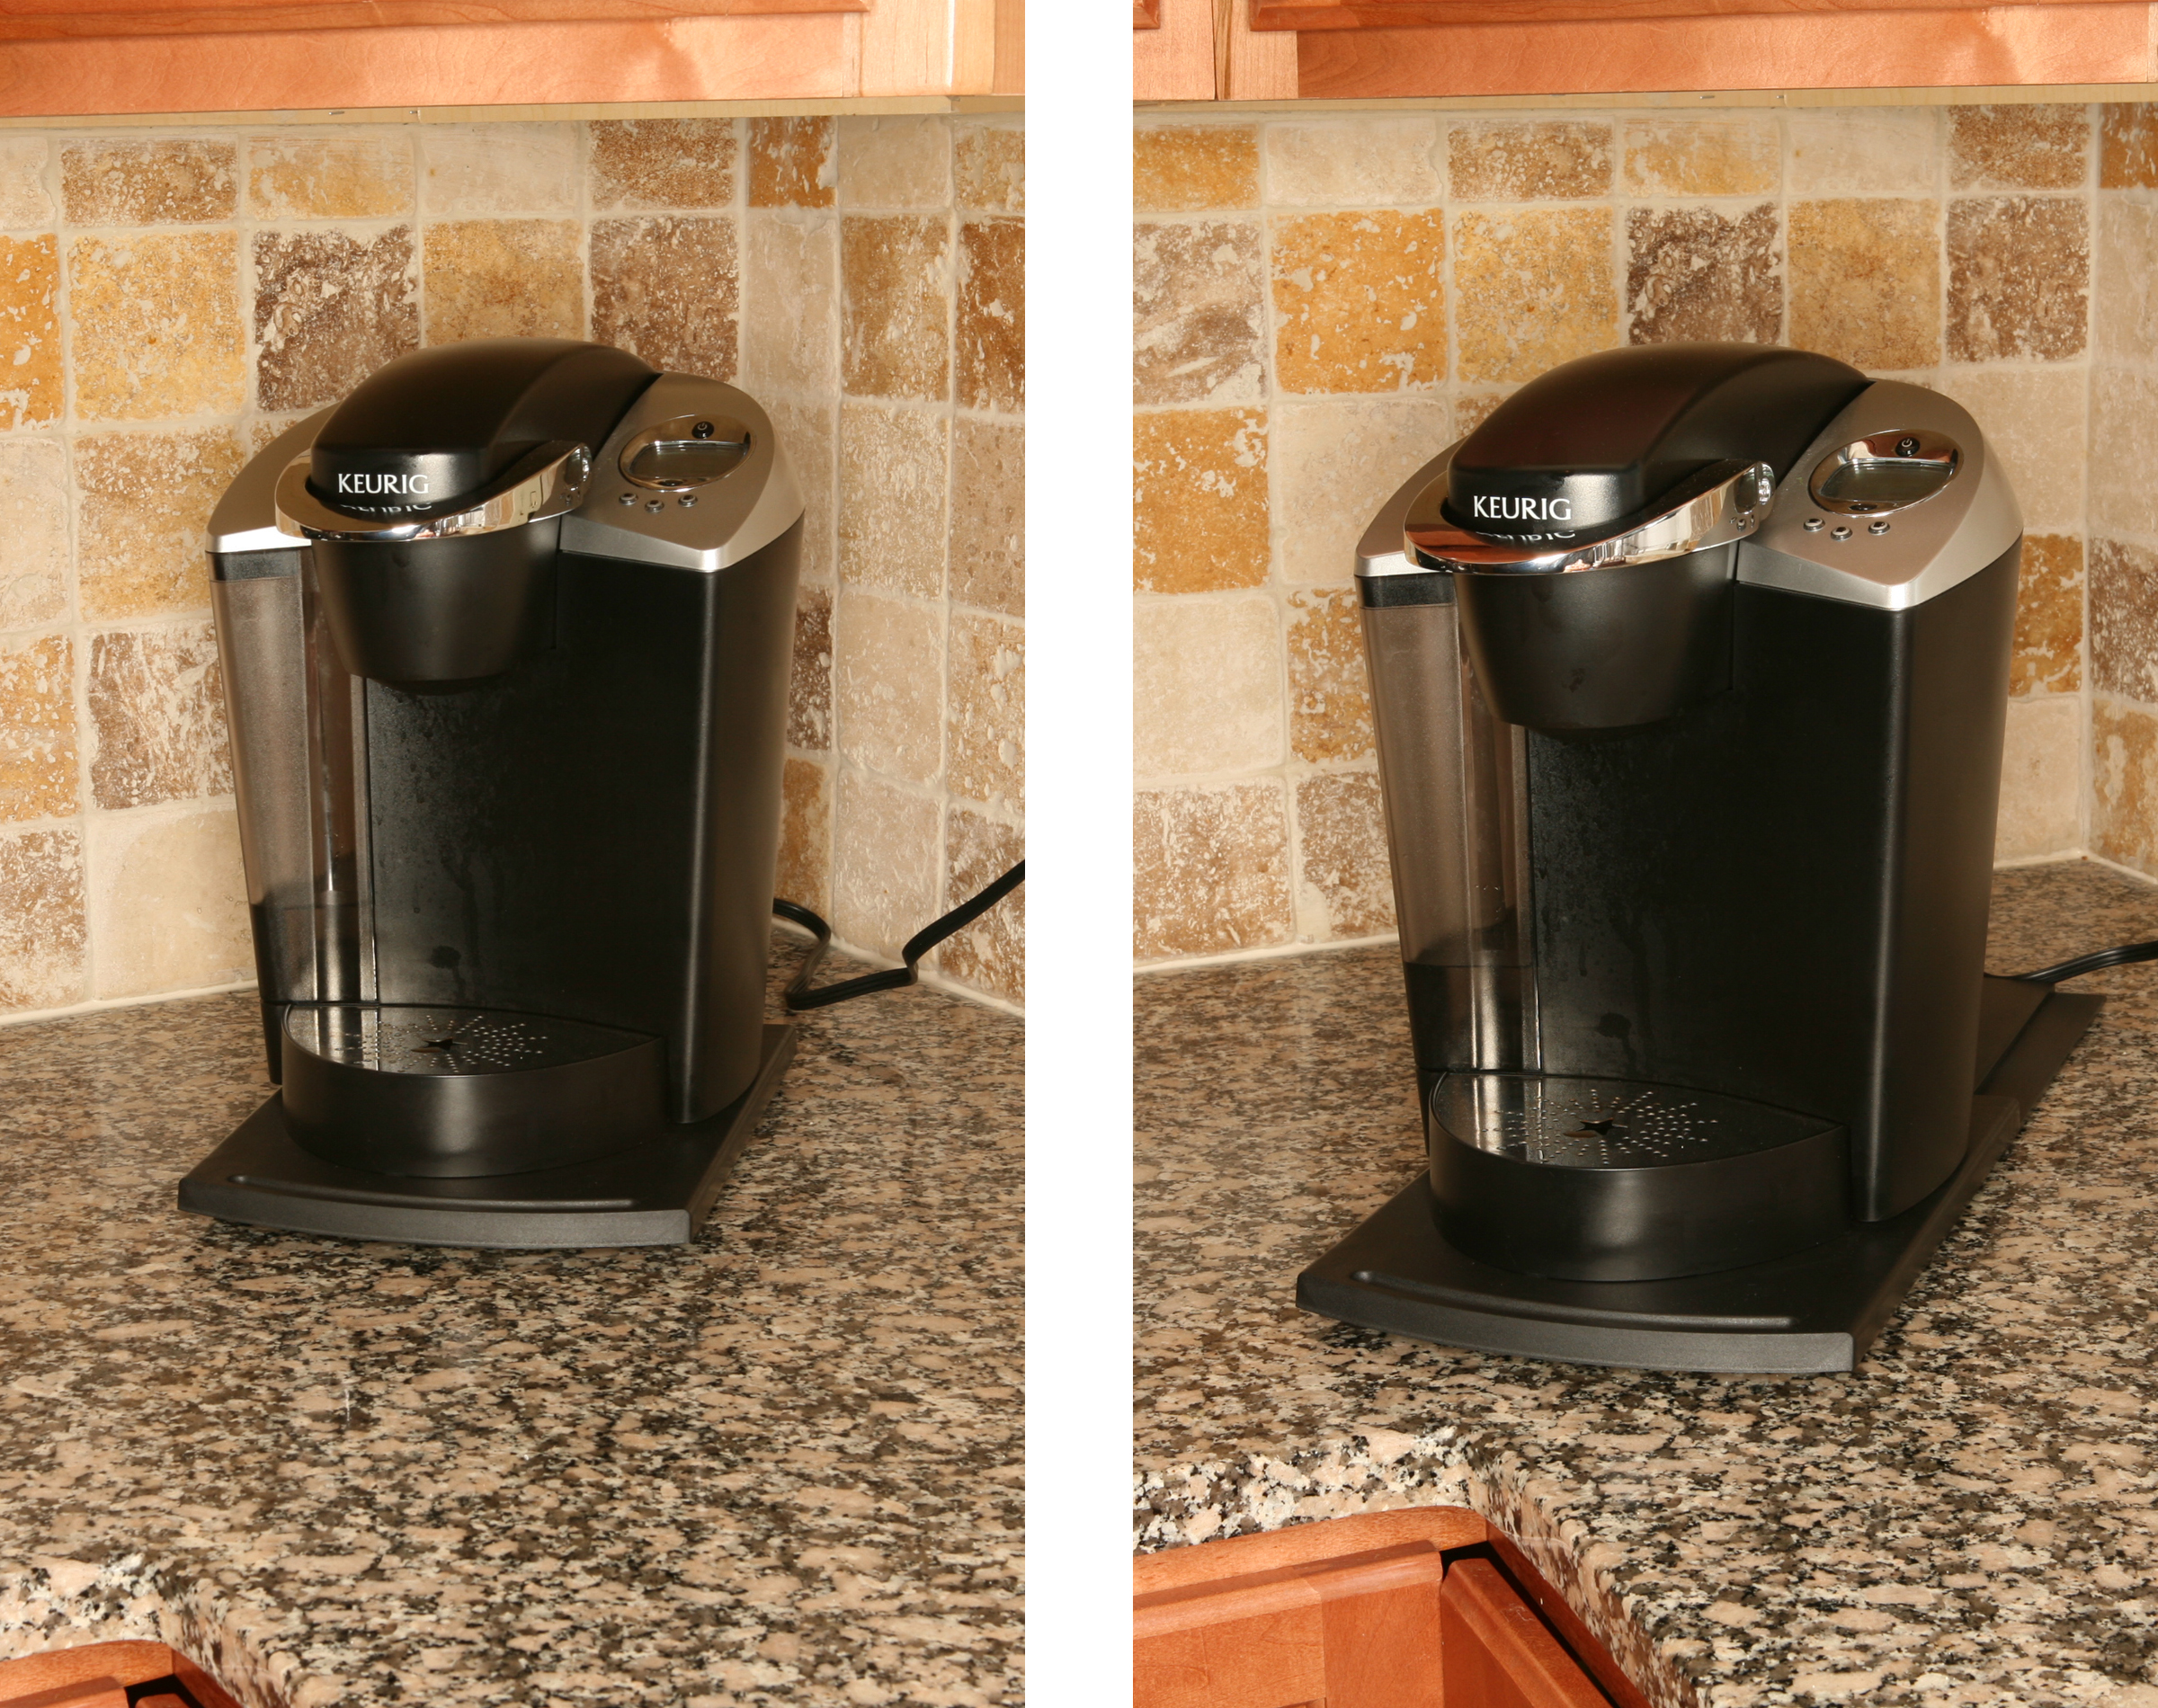 Sliding Shelf Caddy Pull Out Liance Tray To Reach Coffee Maker Toaster